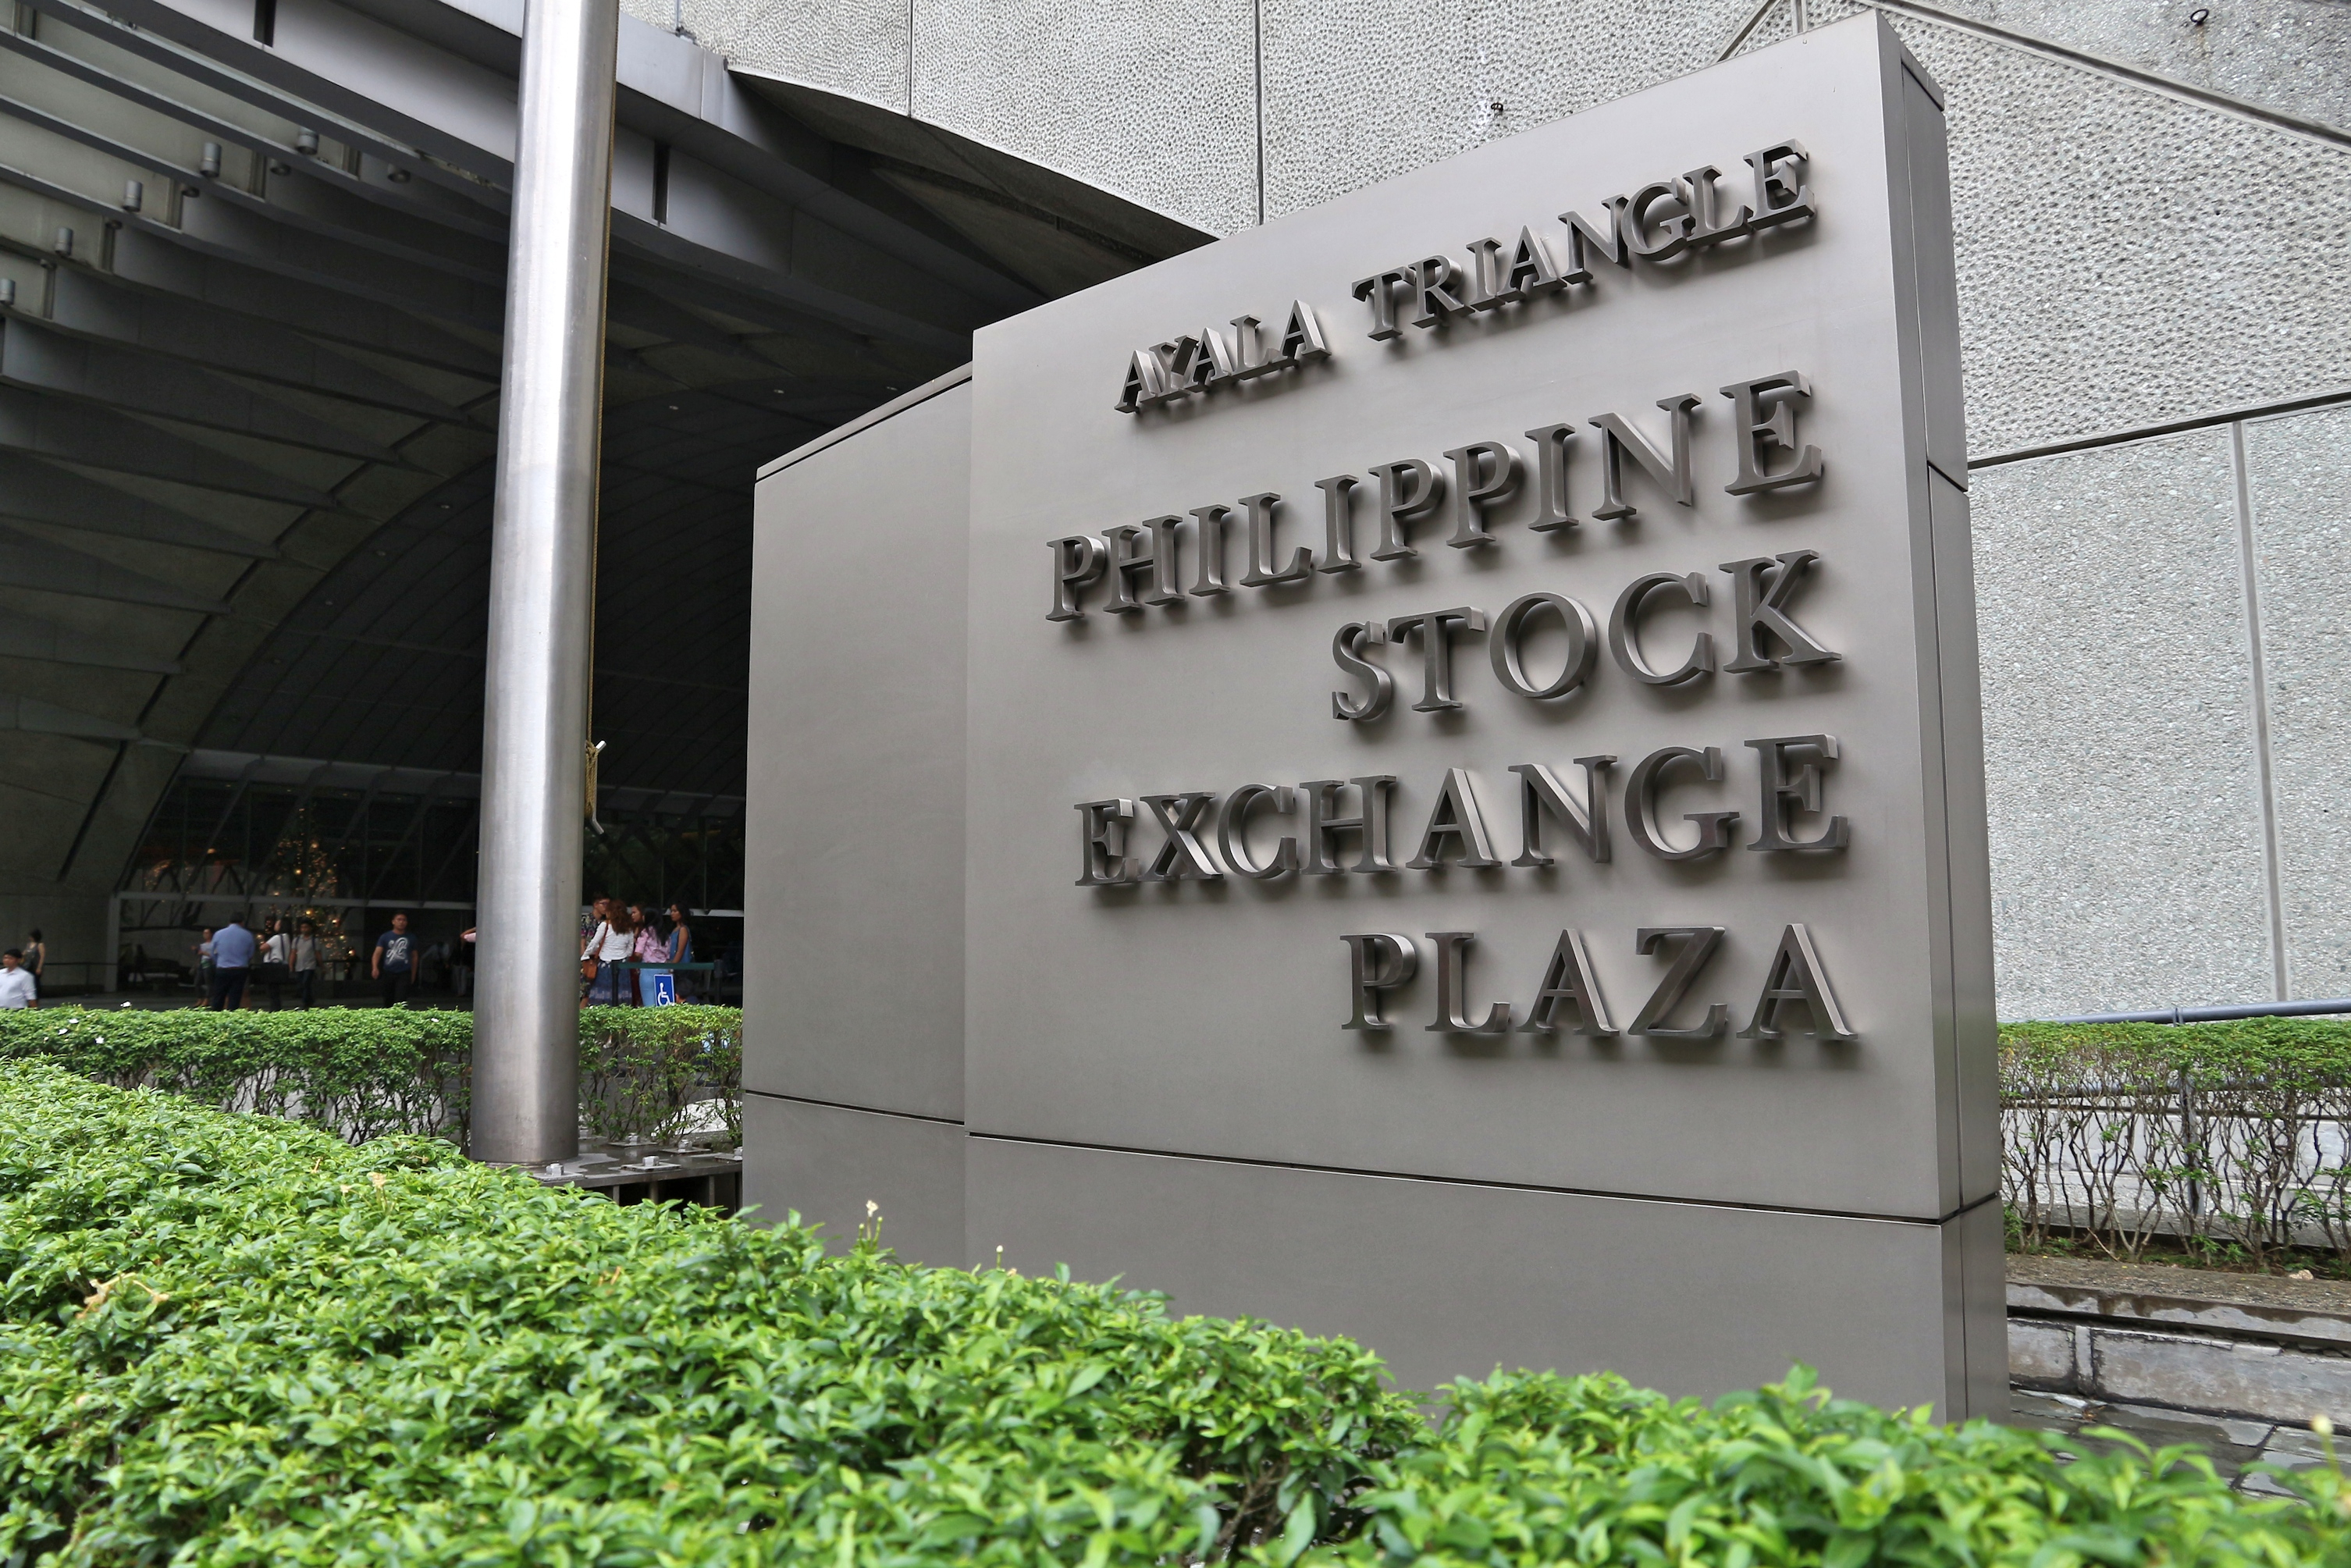 Philippine Stock Exchange wants to provide crypto trading when regulators approve it